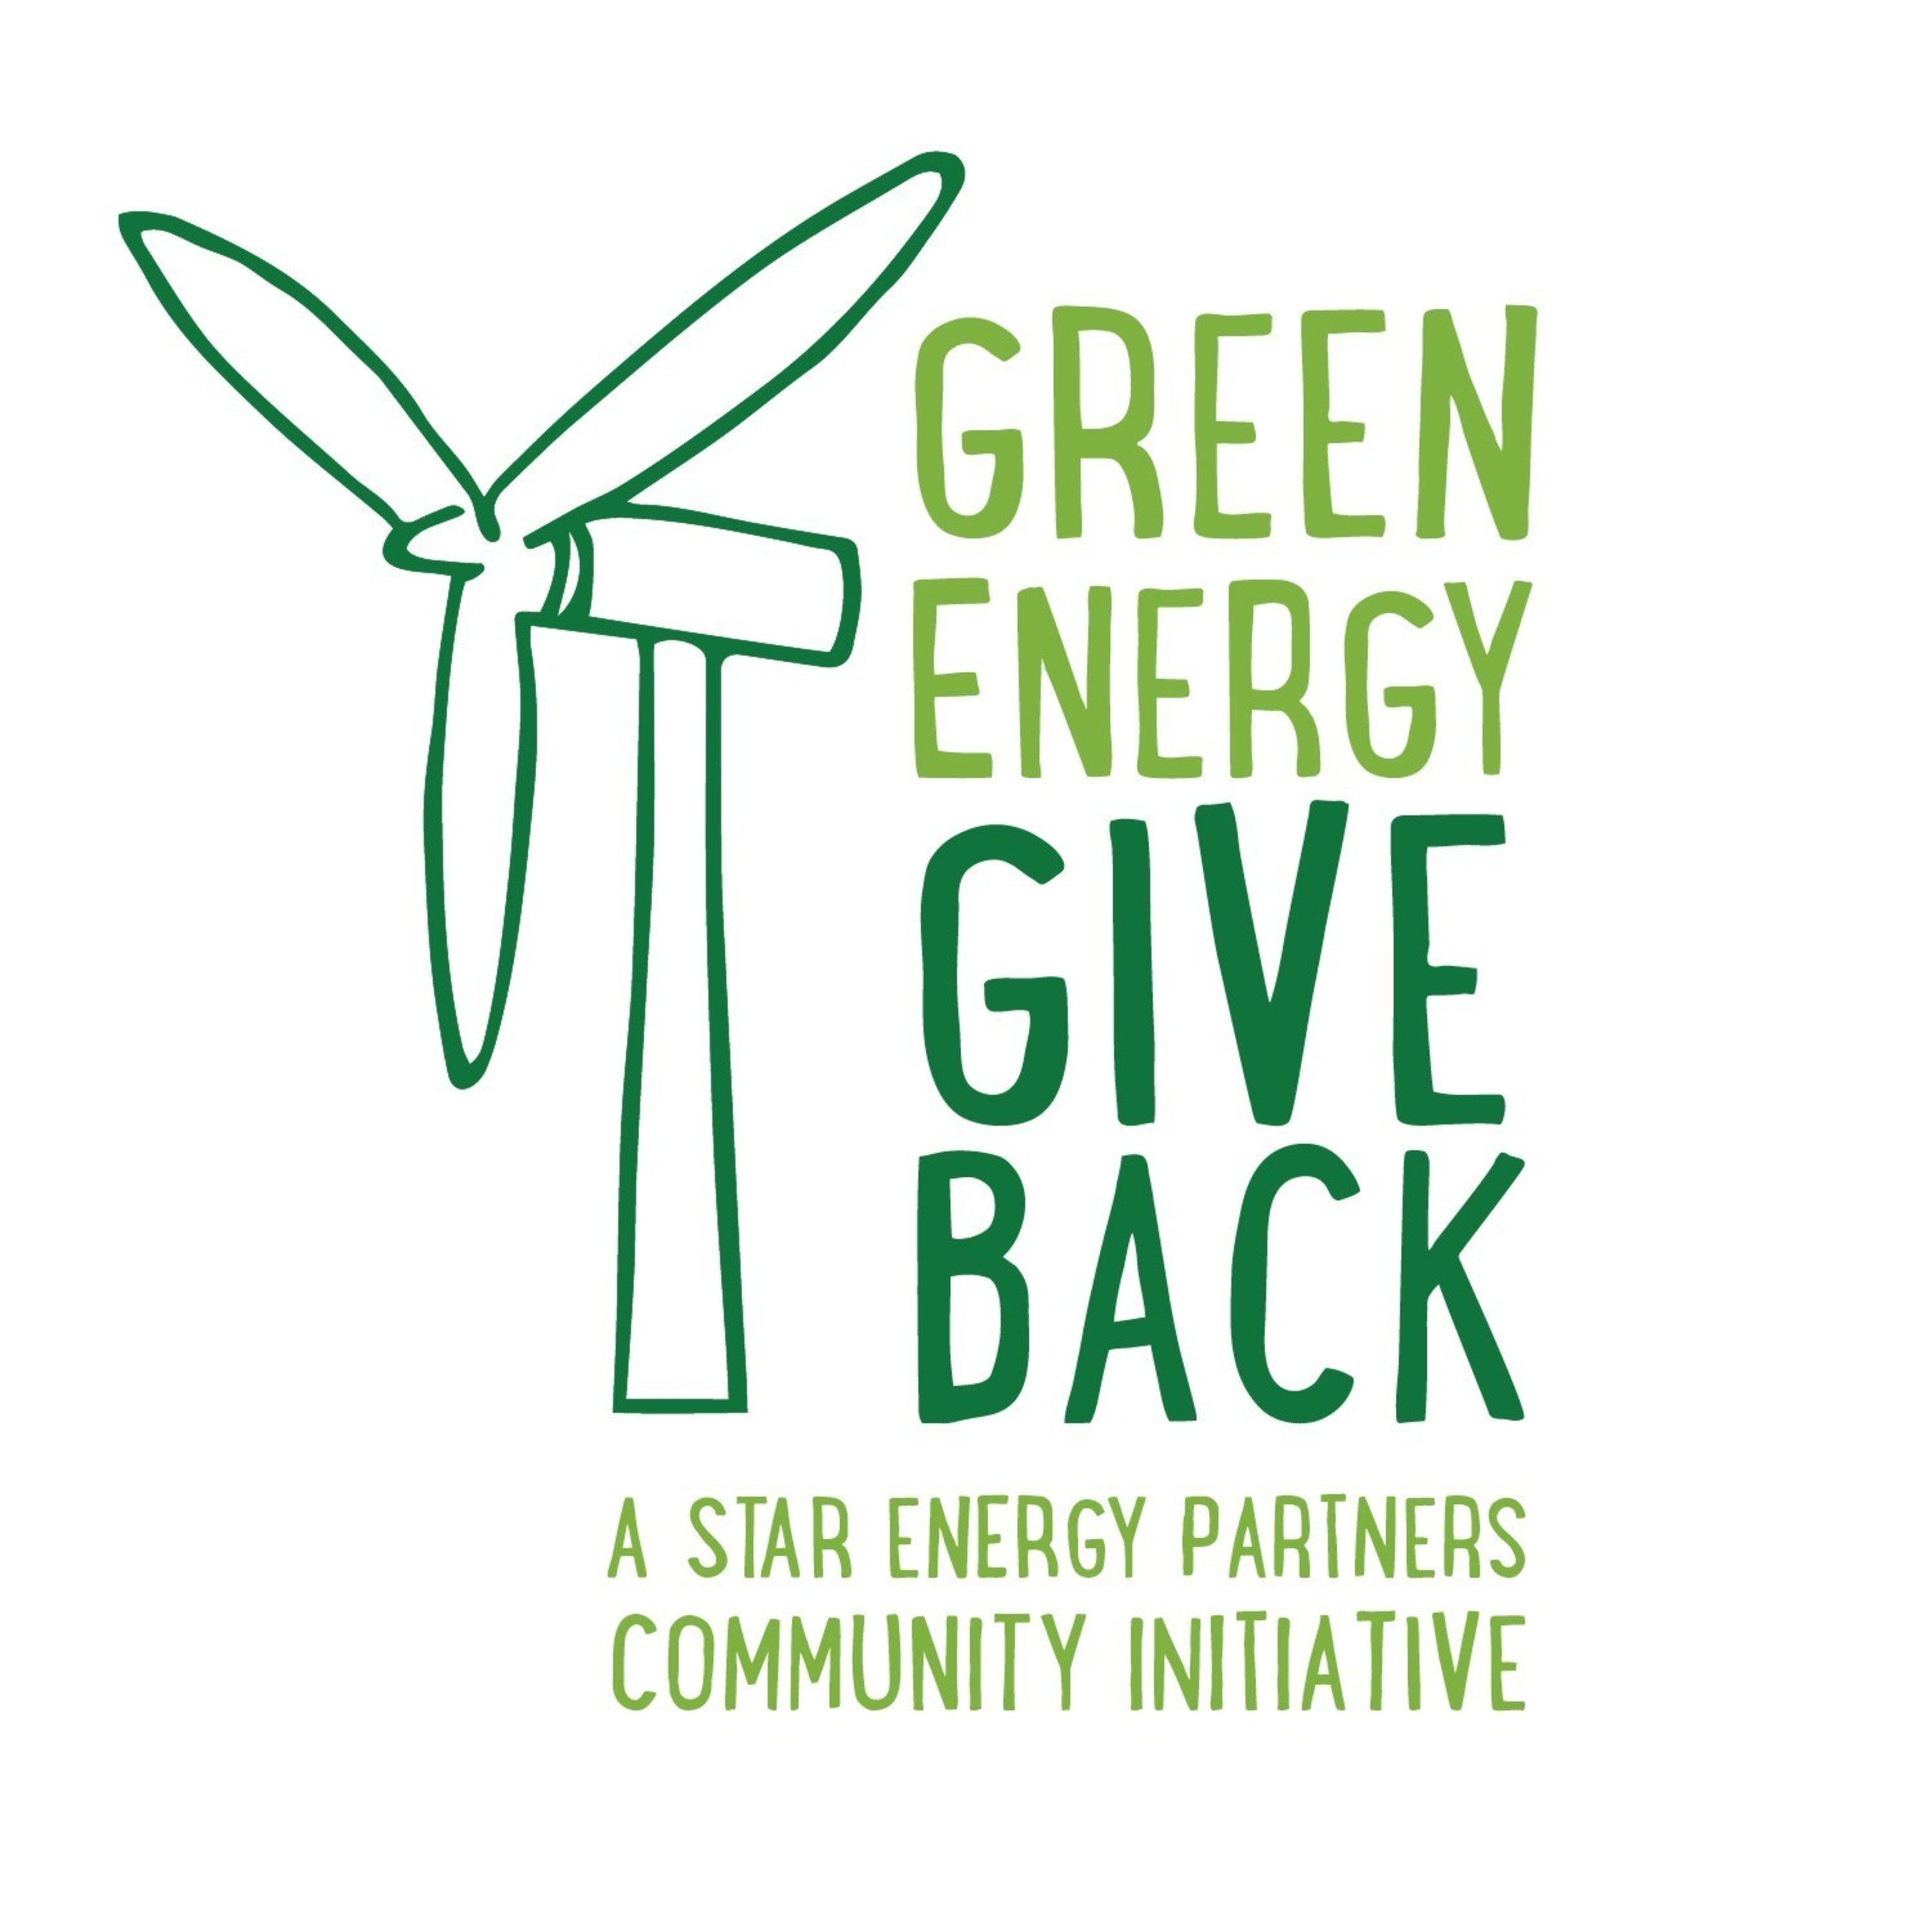 Star Energy Partners Launches Green Energy Give Back Program For Ohio Schools